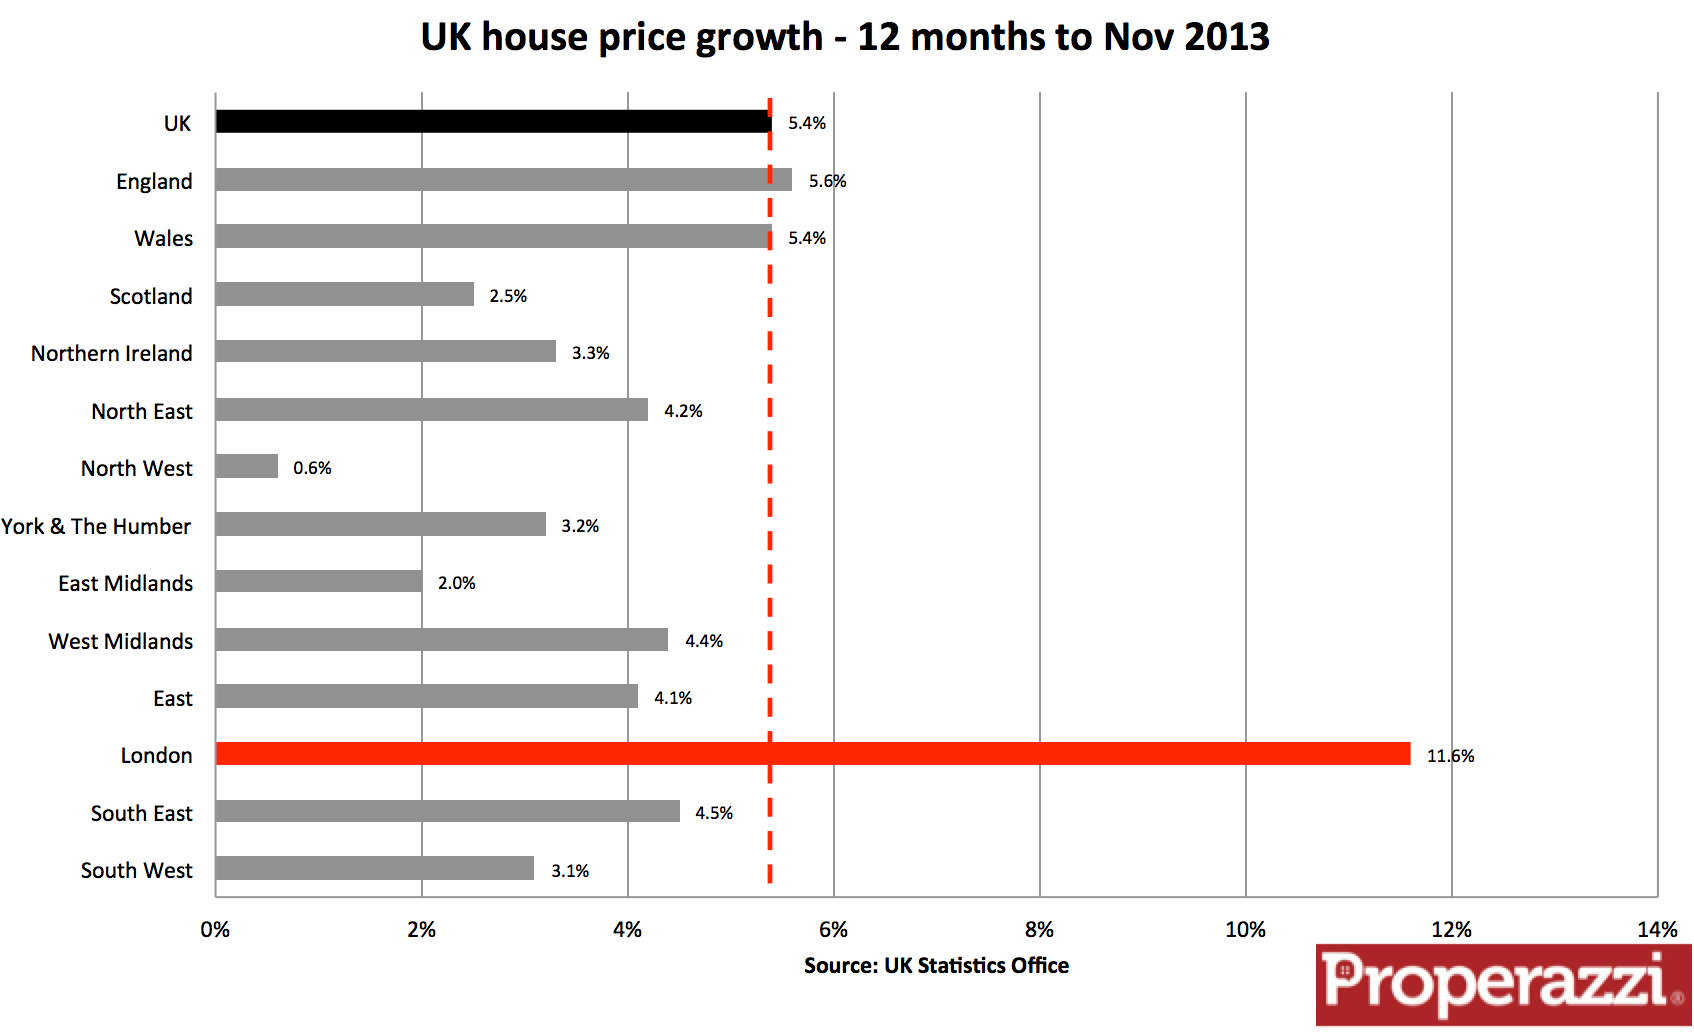 UK_Housing_price change to Nov 13.png